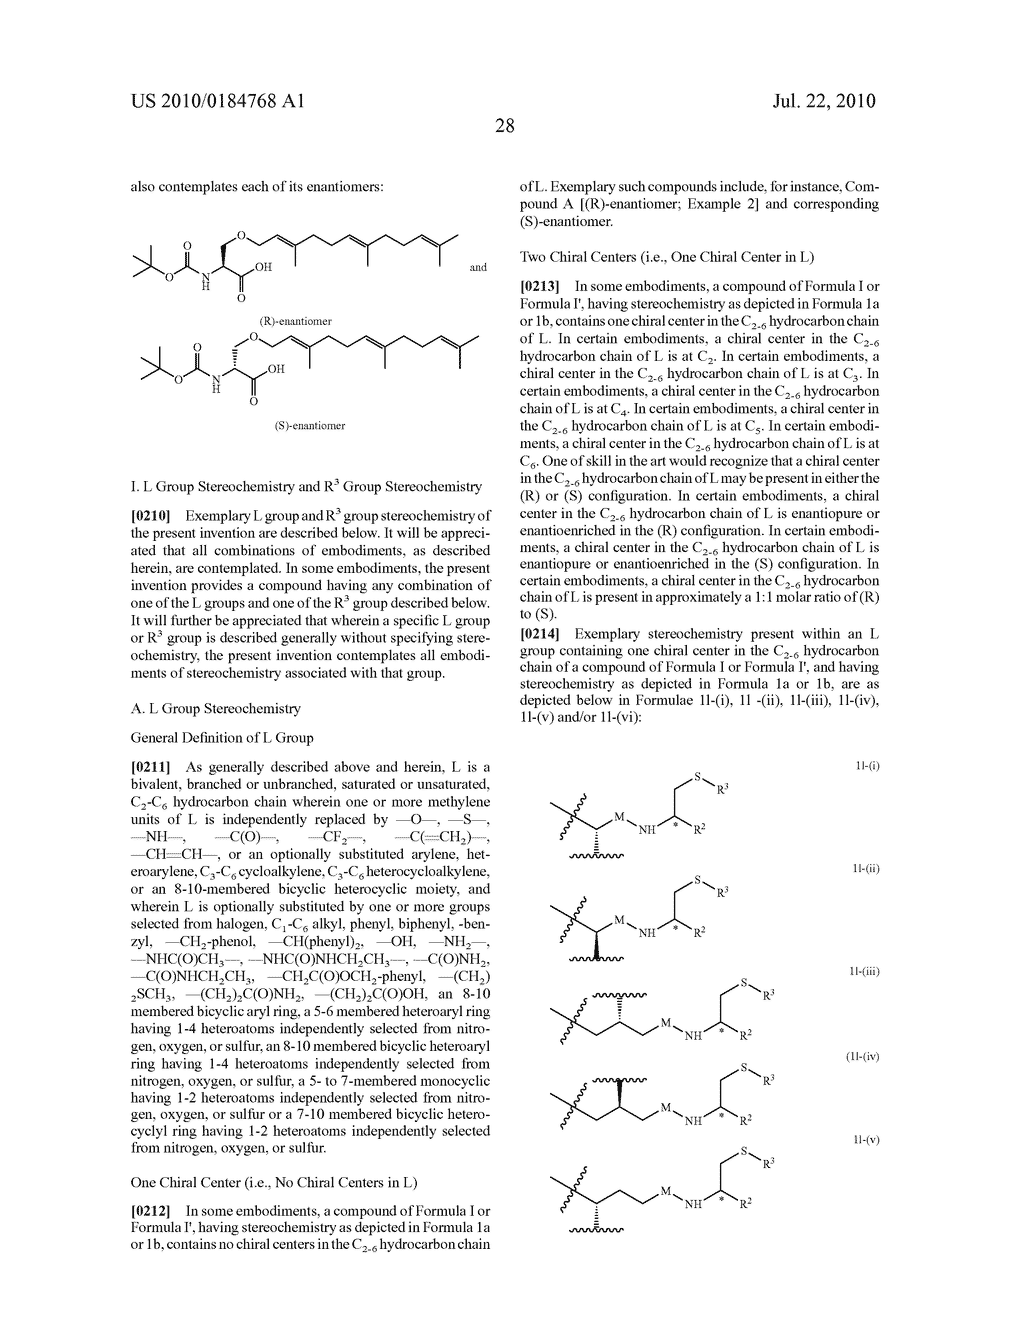 Isoprenyl Compounds and Methods Thereof - diagram, schematic, and image 43